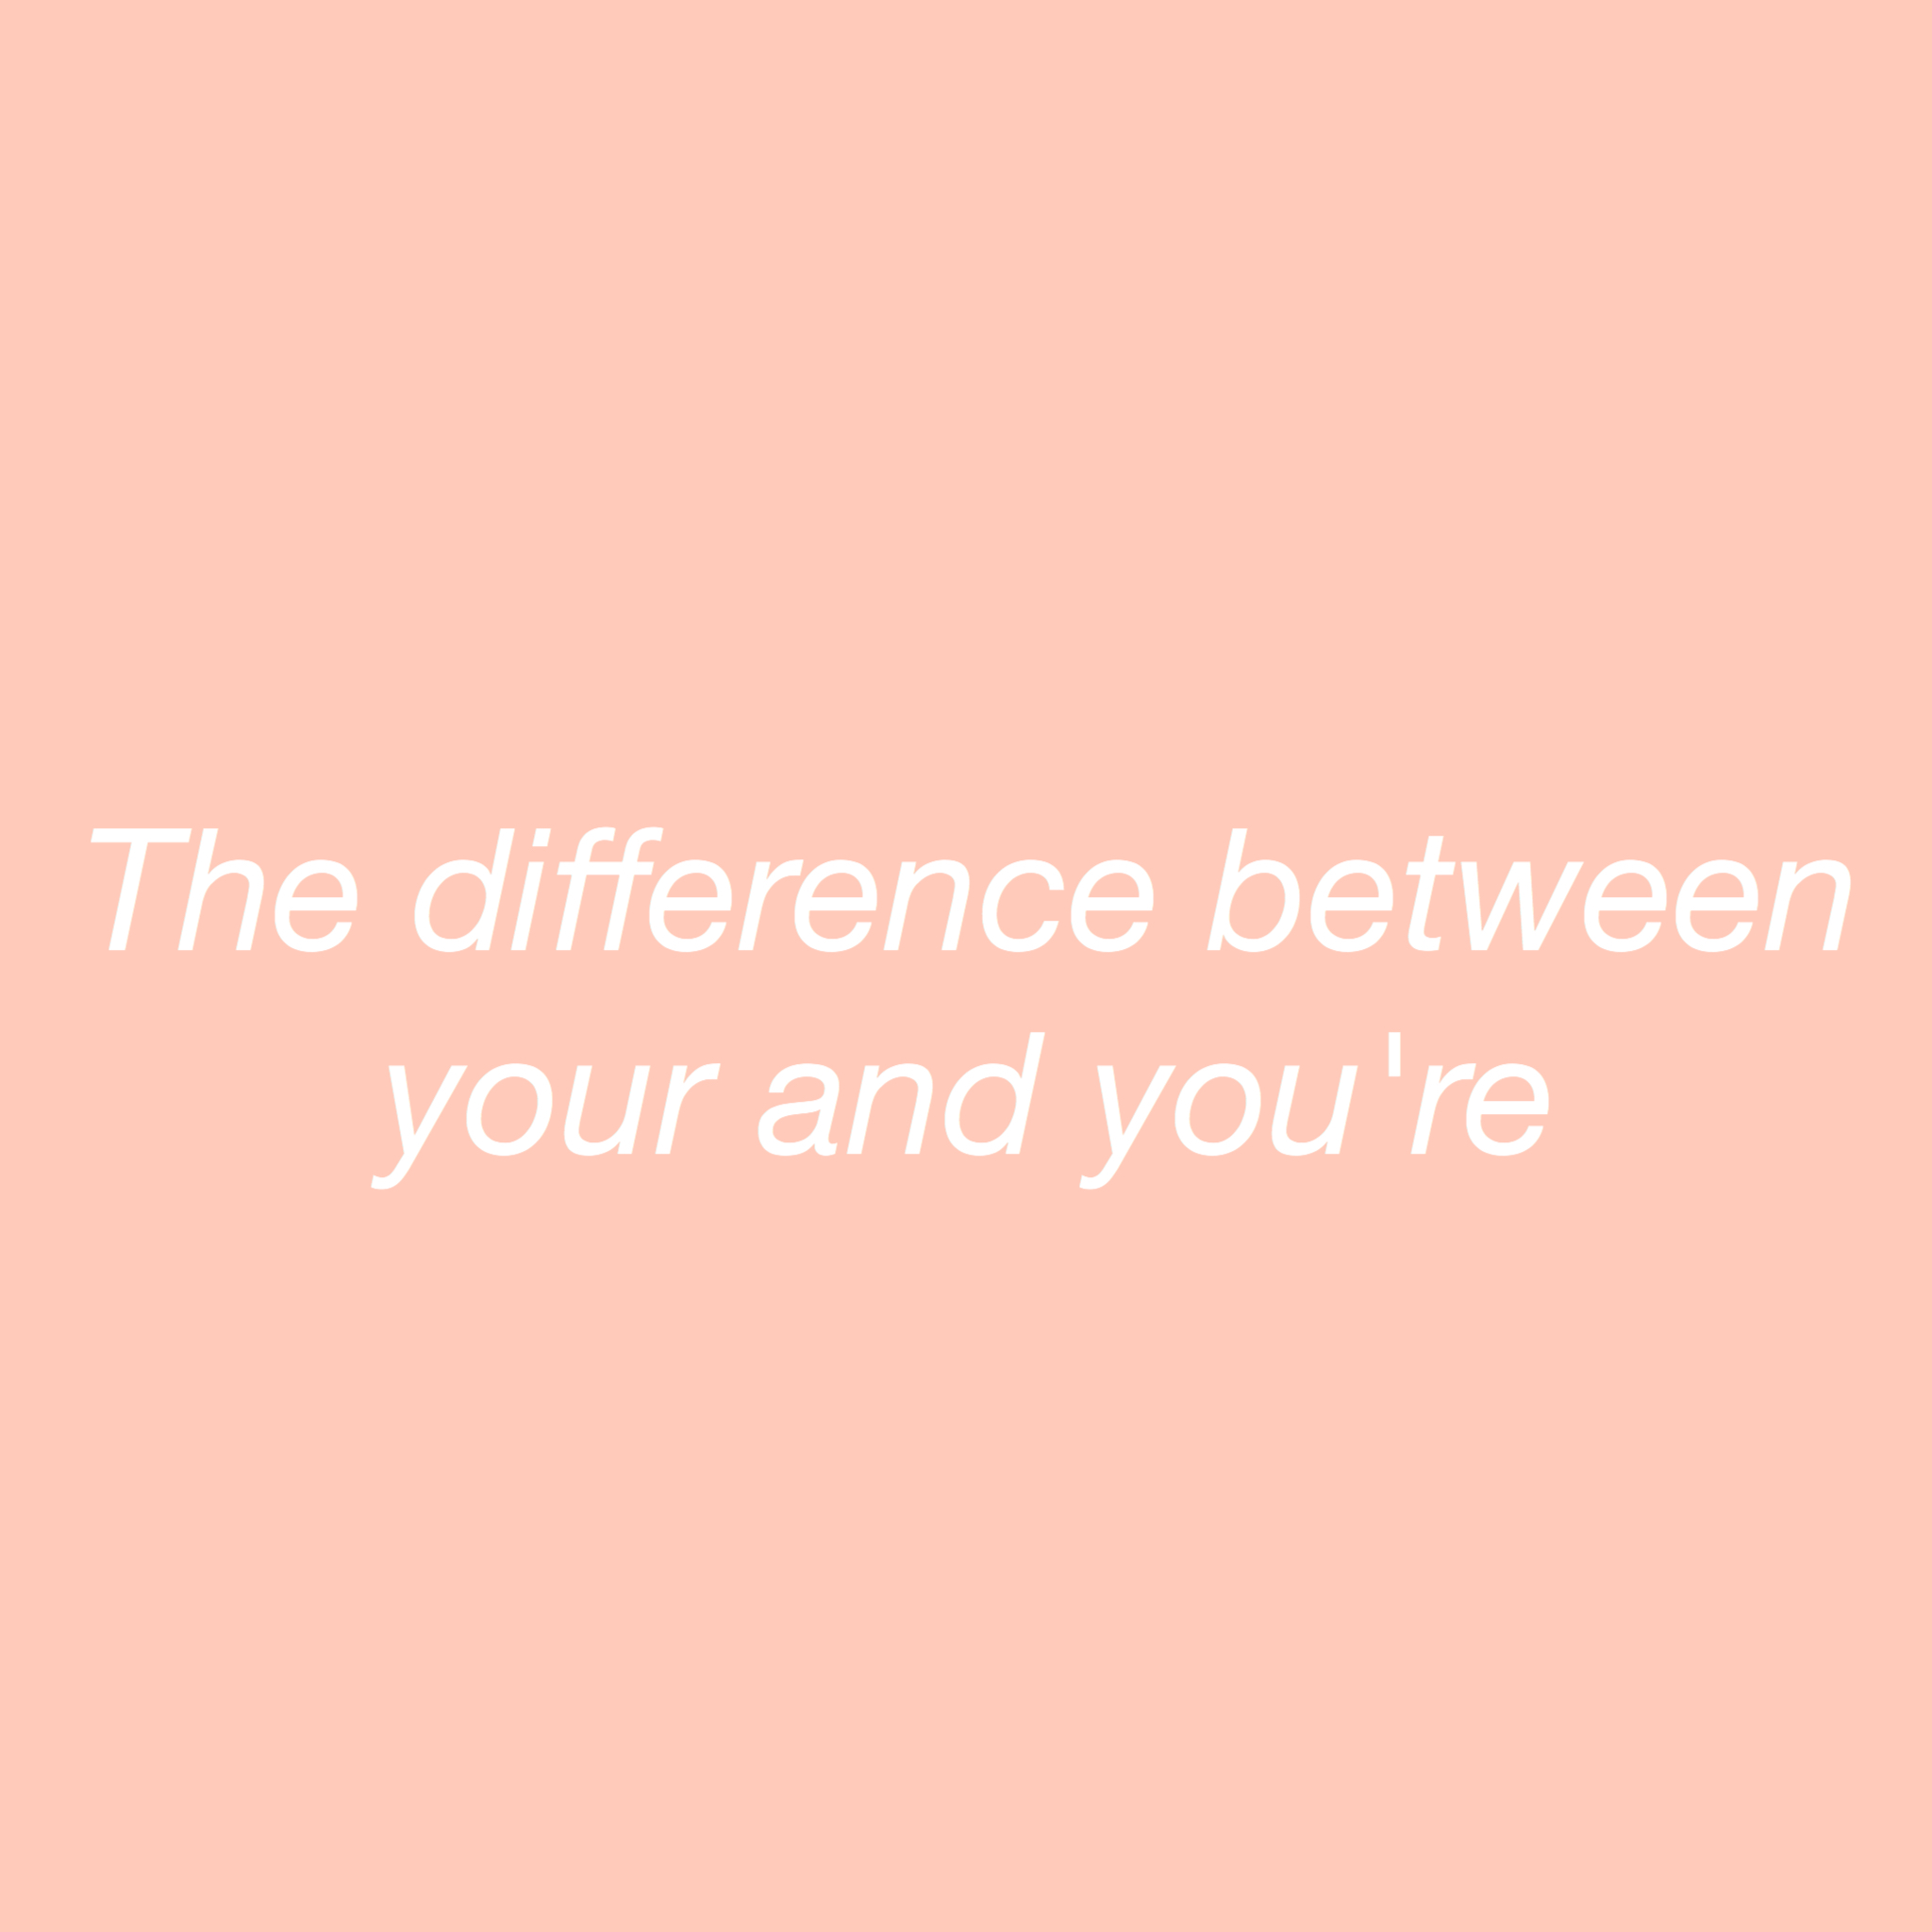 The difference between your and you're